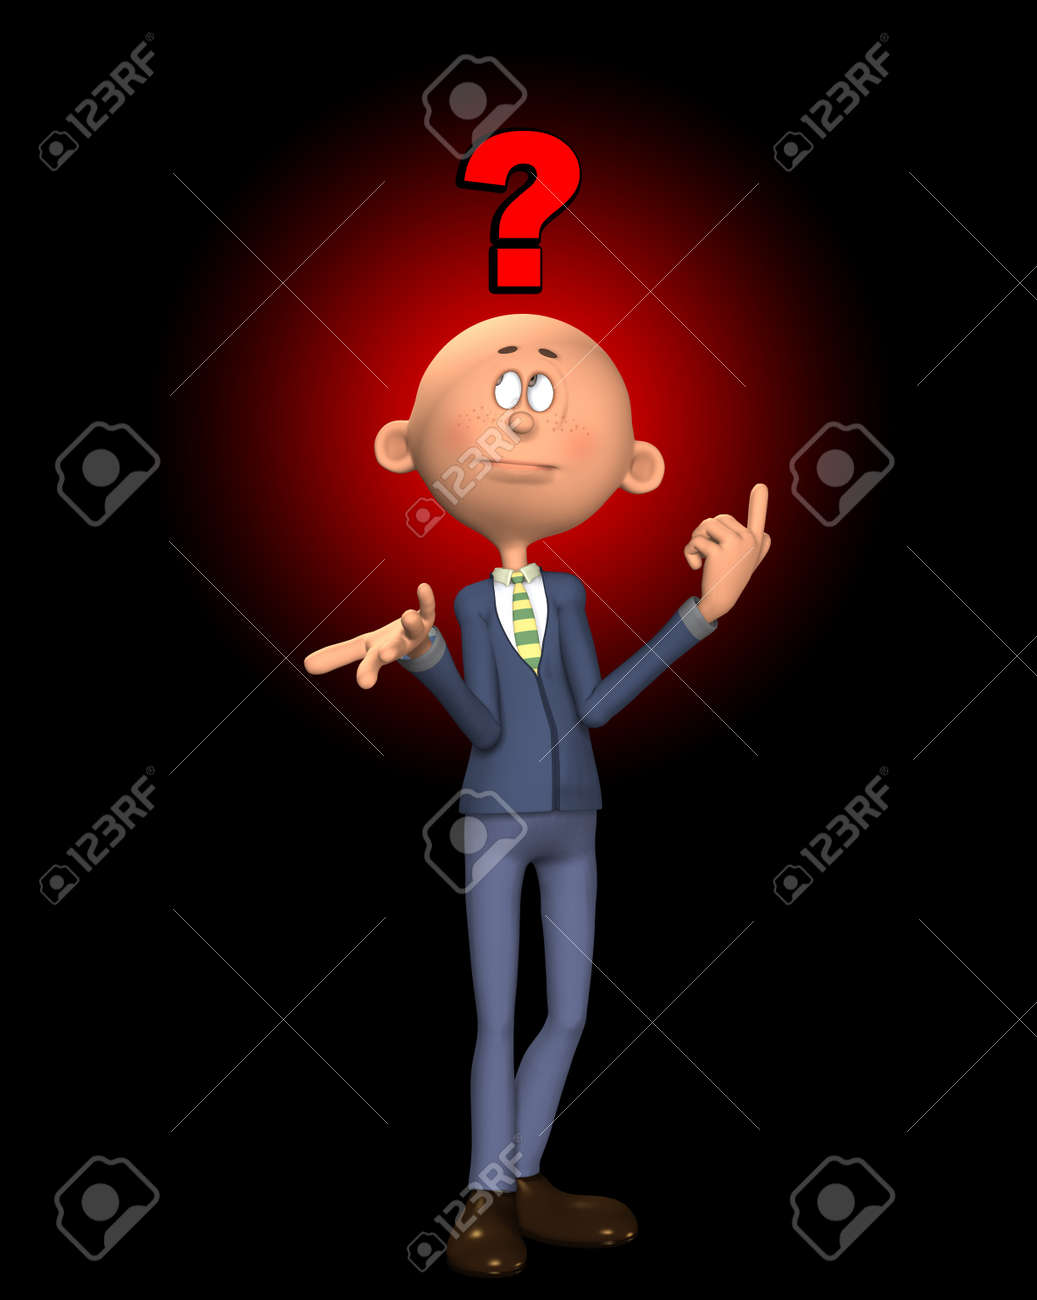 Concept image showing a puzzled and confused man. Stock Photo - 9581060